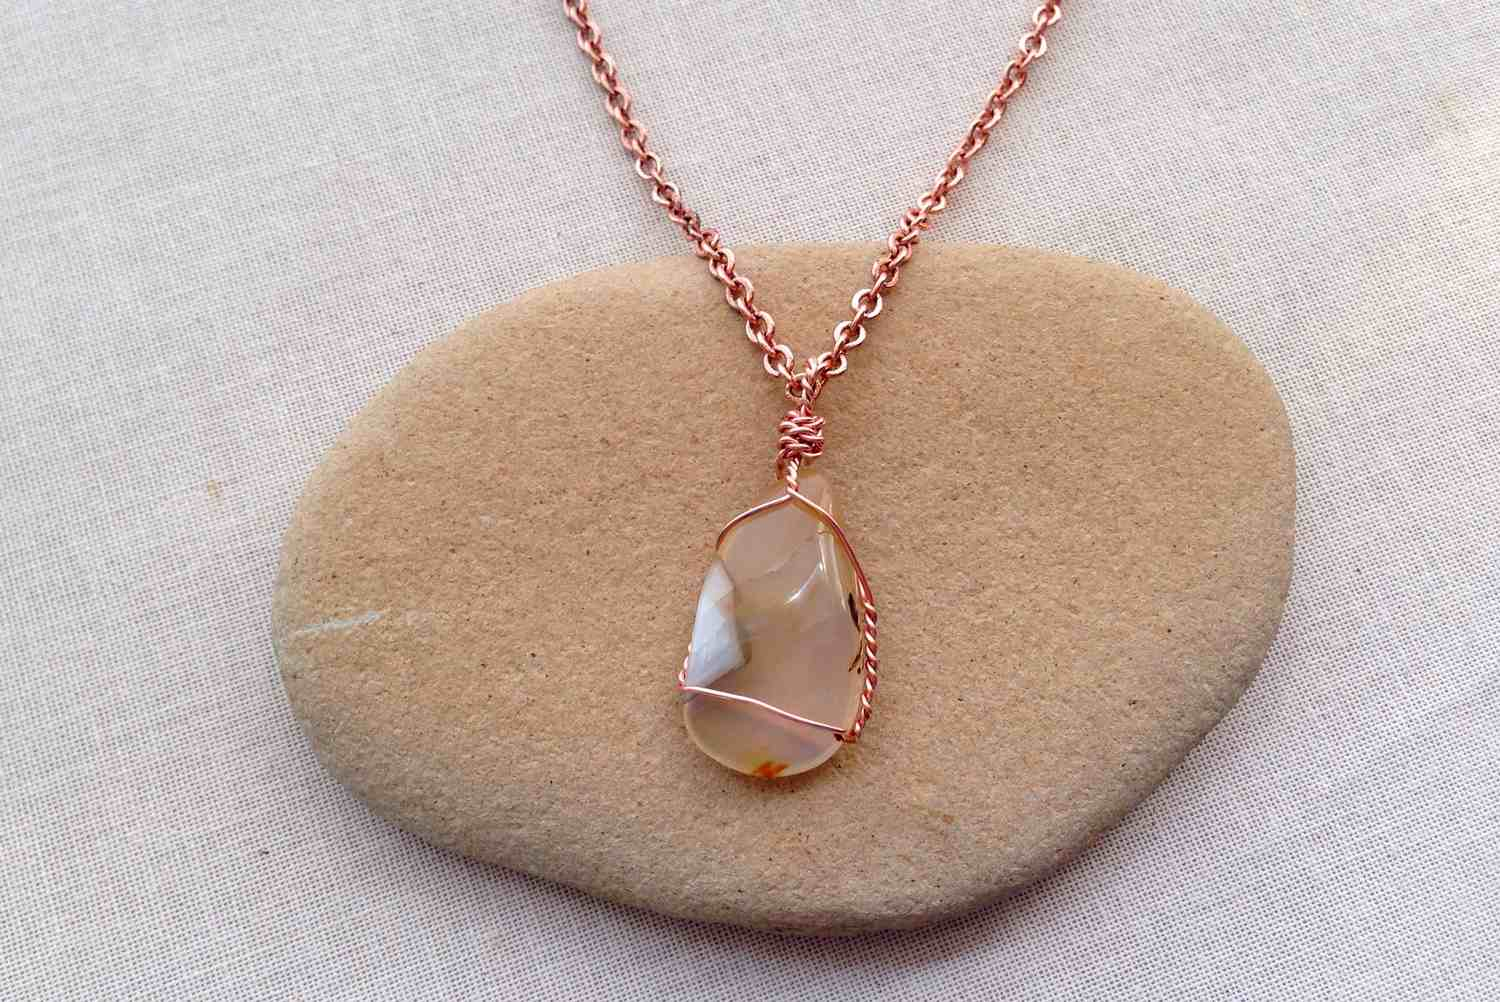 Stupendous How To Make A Polished Stone A Pendant Necklace Wiring Digital Resources Sapredefiancerspsorg